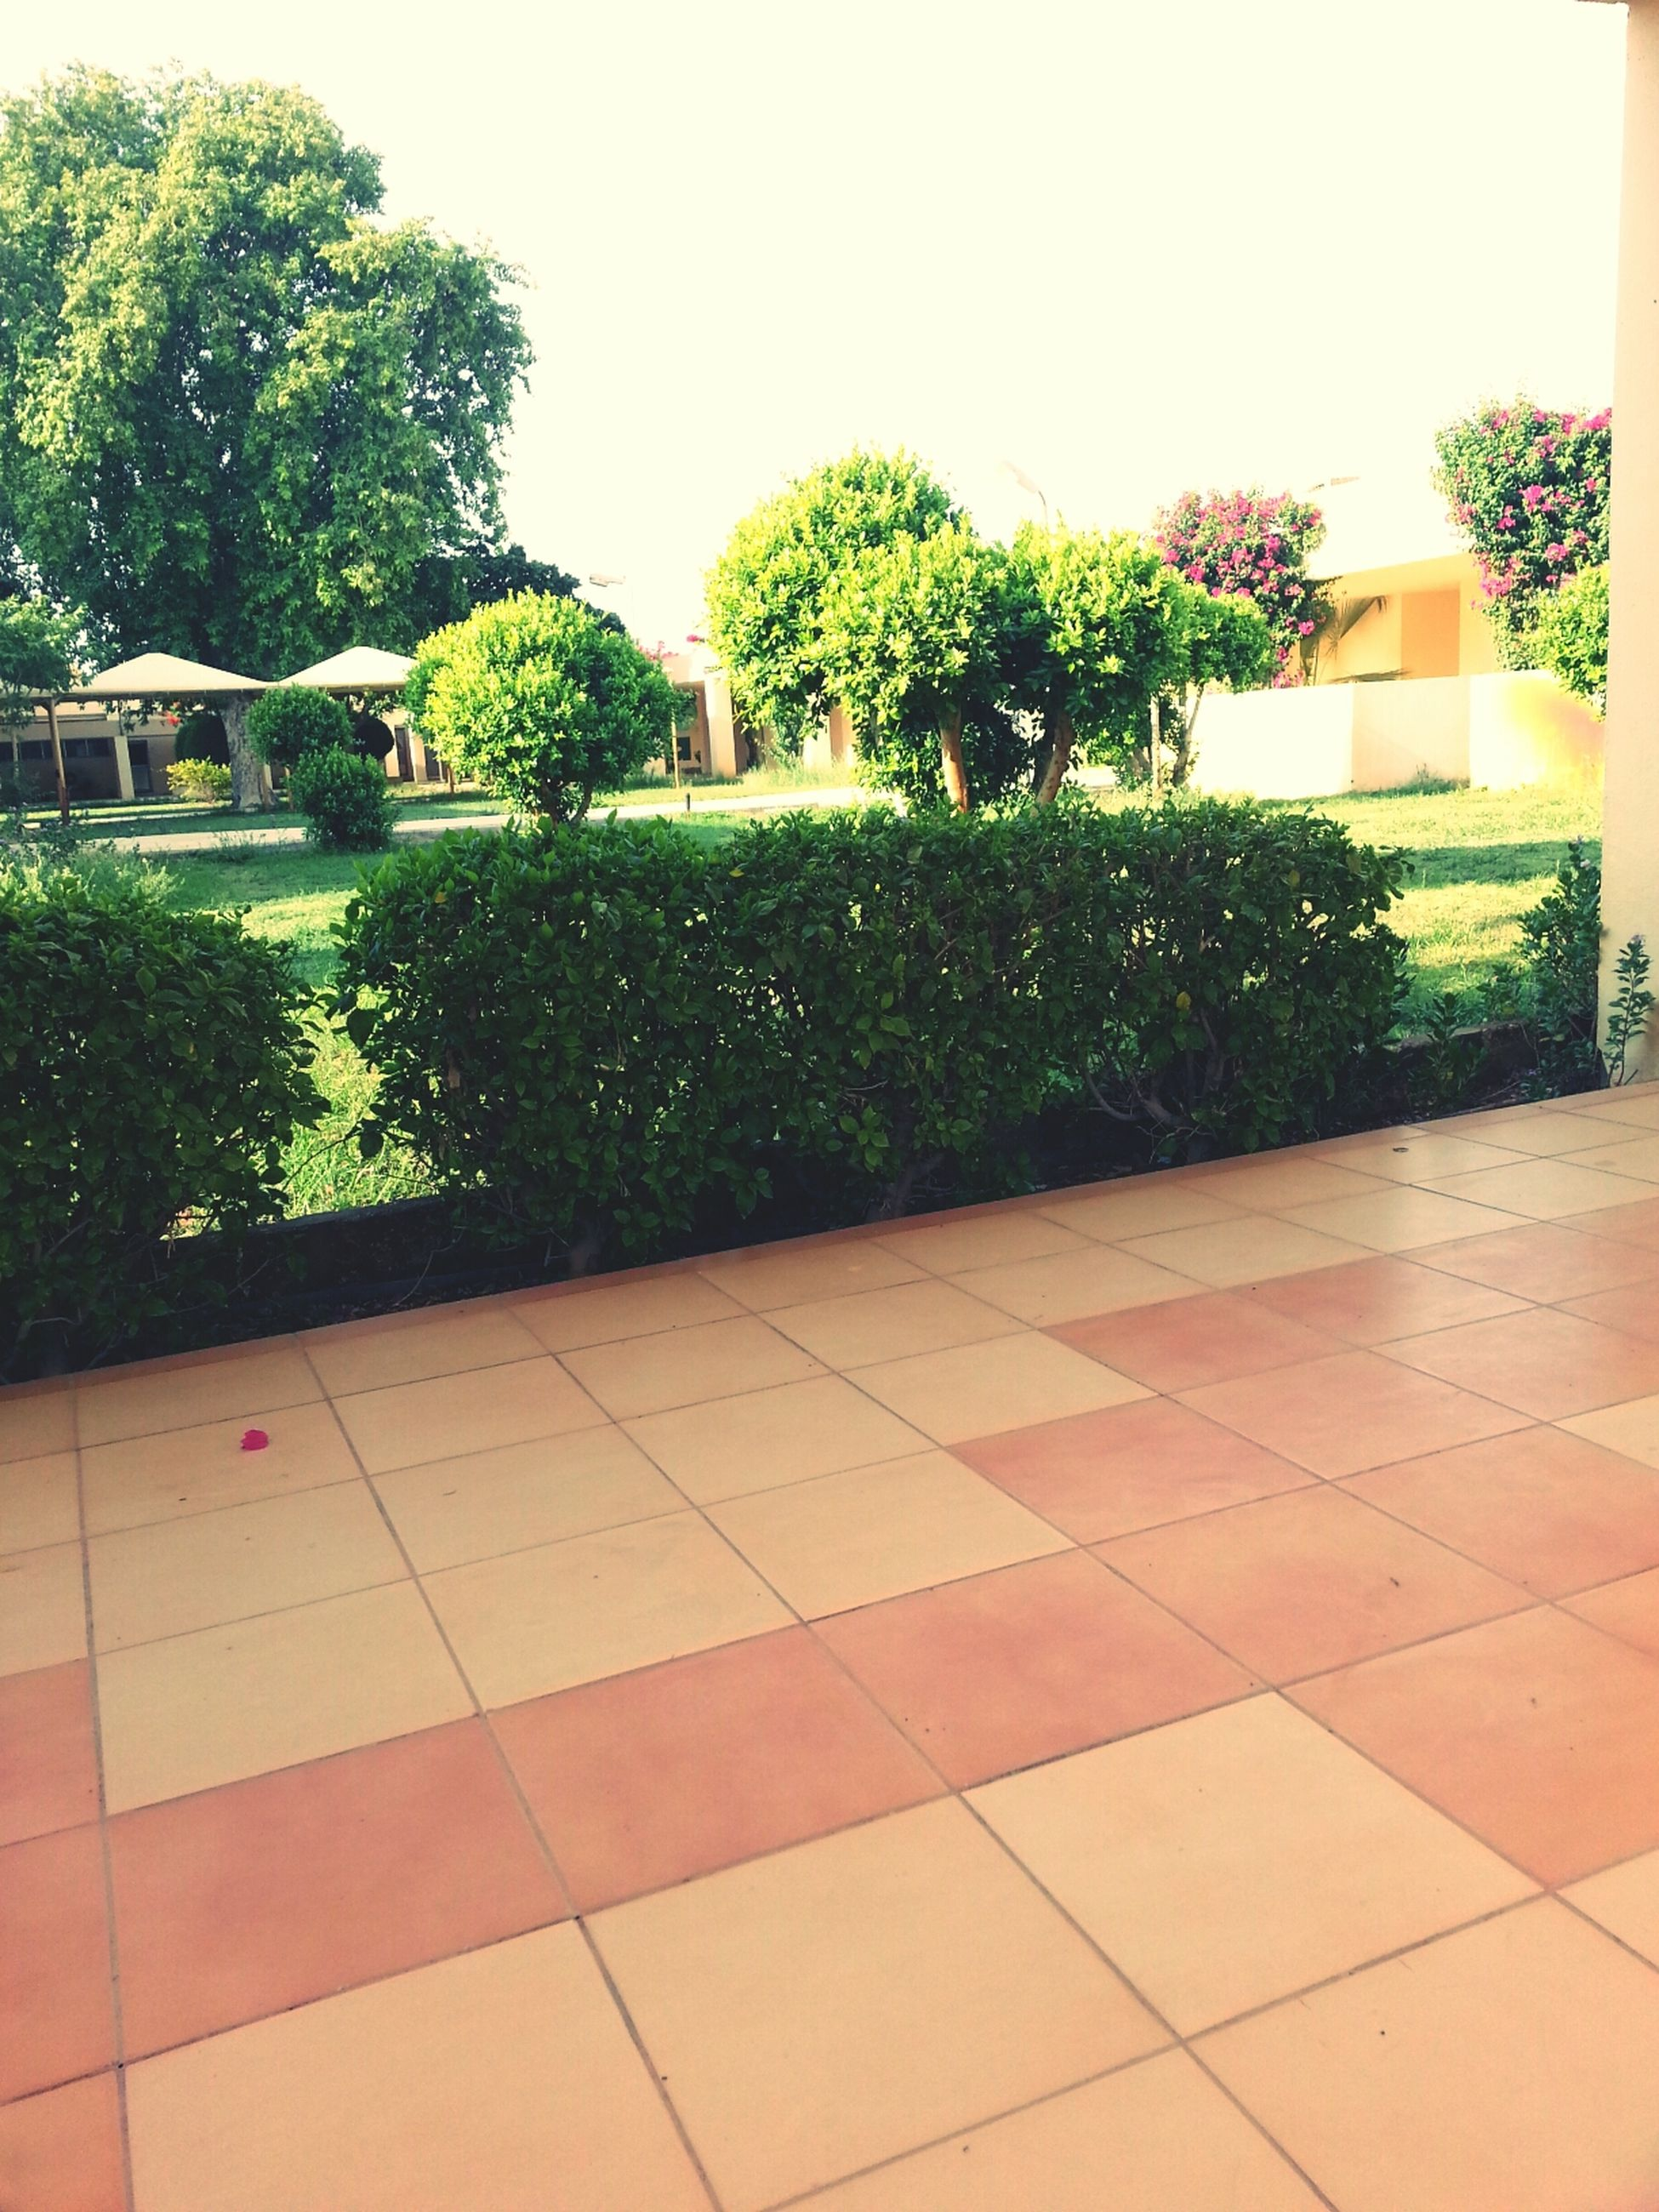 tree, green color, growth, plant, built structure, architecture, building exterior, formal garden, potted plant, clear sky, nature, day, green, park - man made space, outdoors, house, no people, paving stone, growing, water